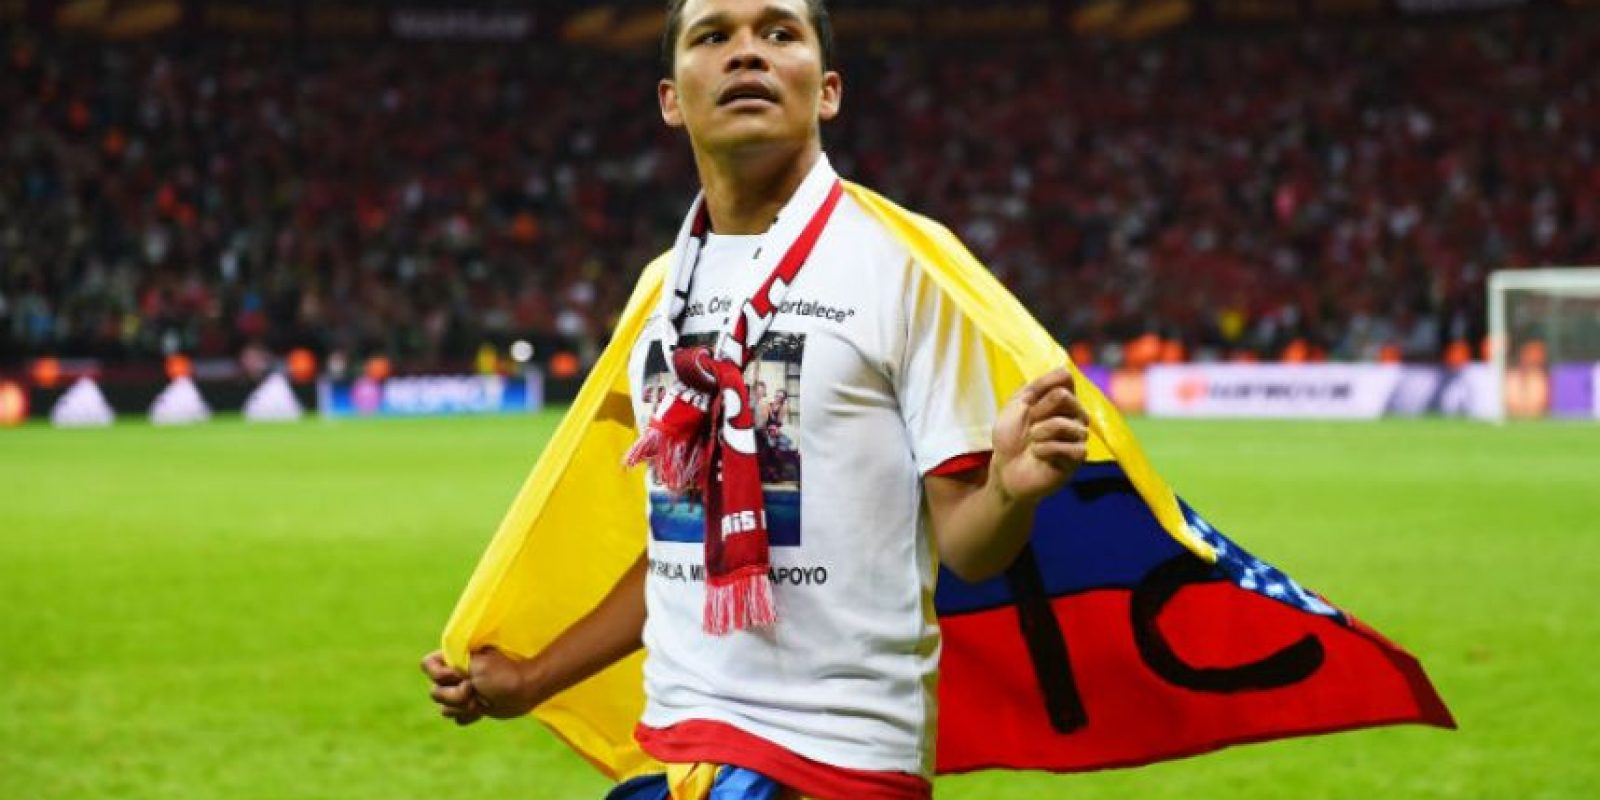 10. Carlos Bacca Foto: Getty Images